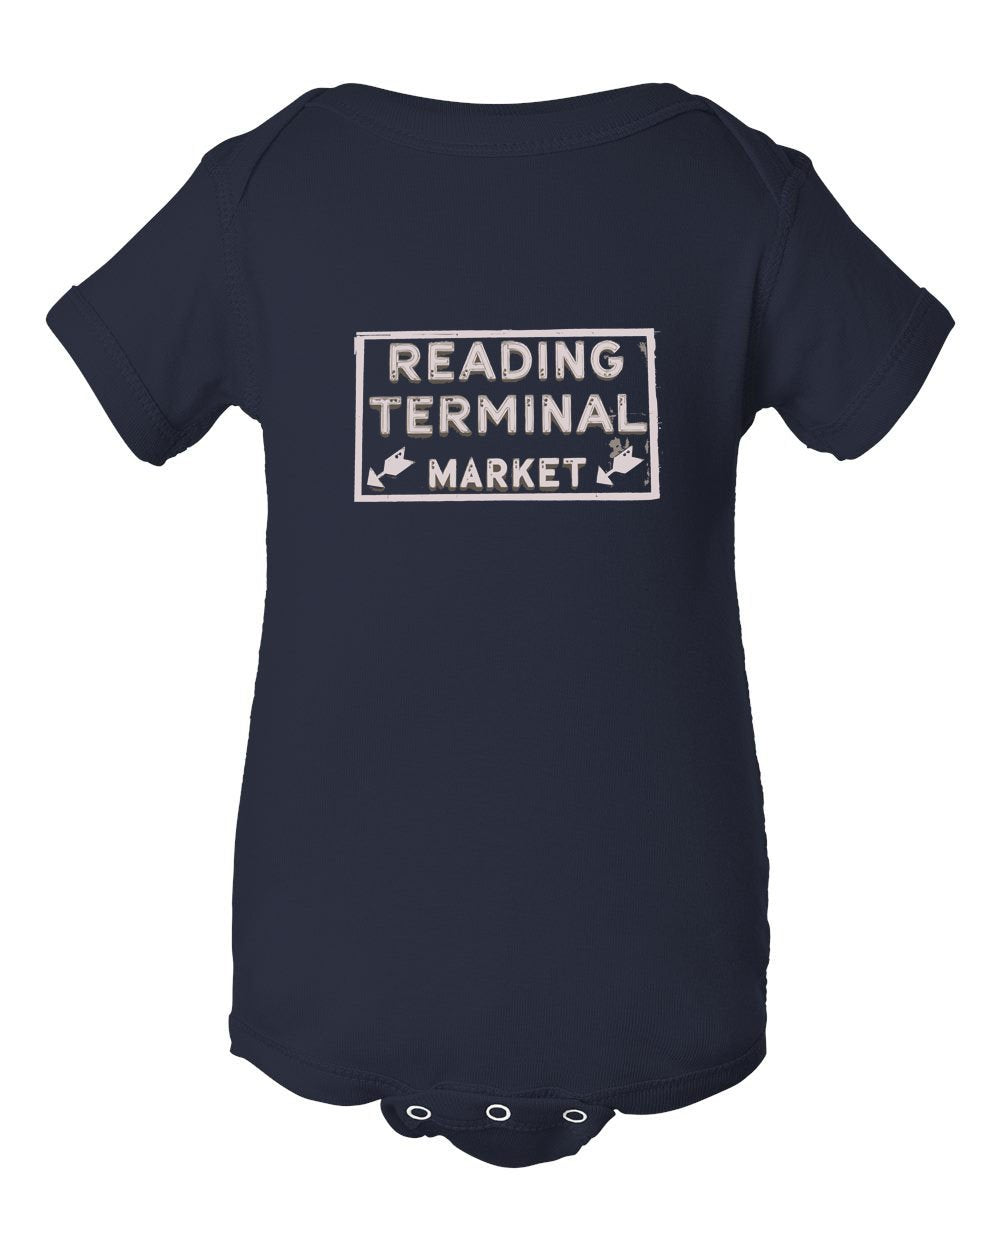 Reading Market INFANT Onesie